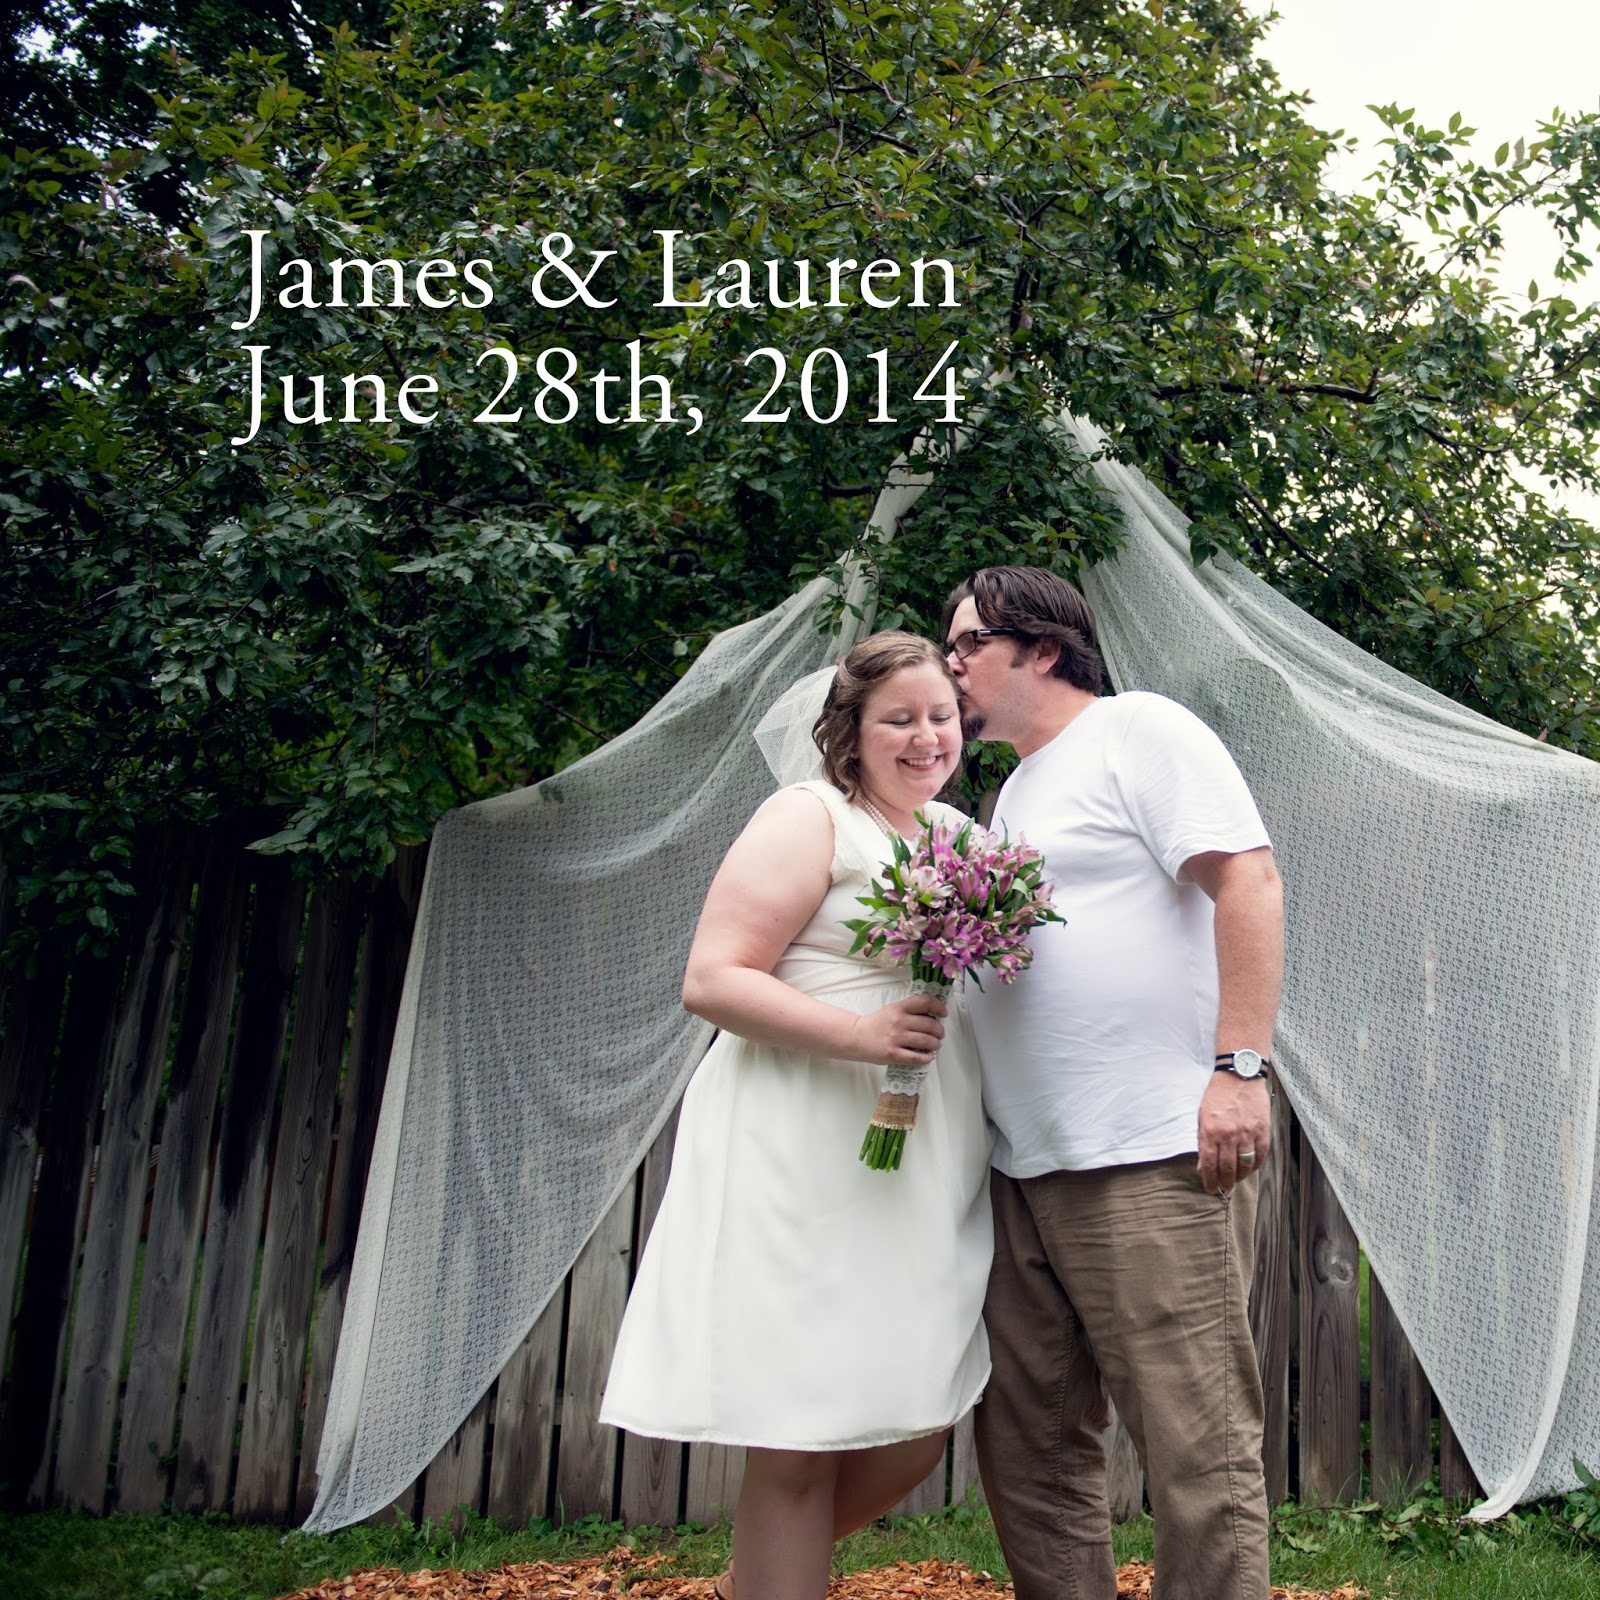 Our surprise wedding june 2014 has passport will travel three years ago today i married my best friend hes an amazing partner and father and i often ask myself how i got this lucky junglespirit Image collections